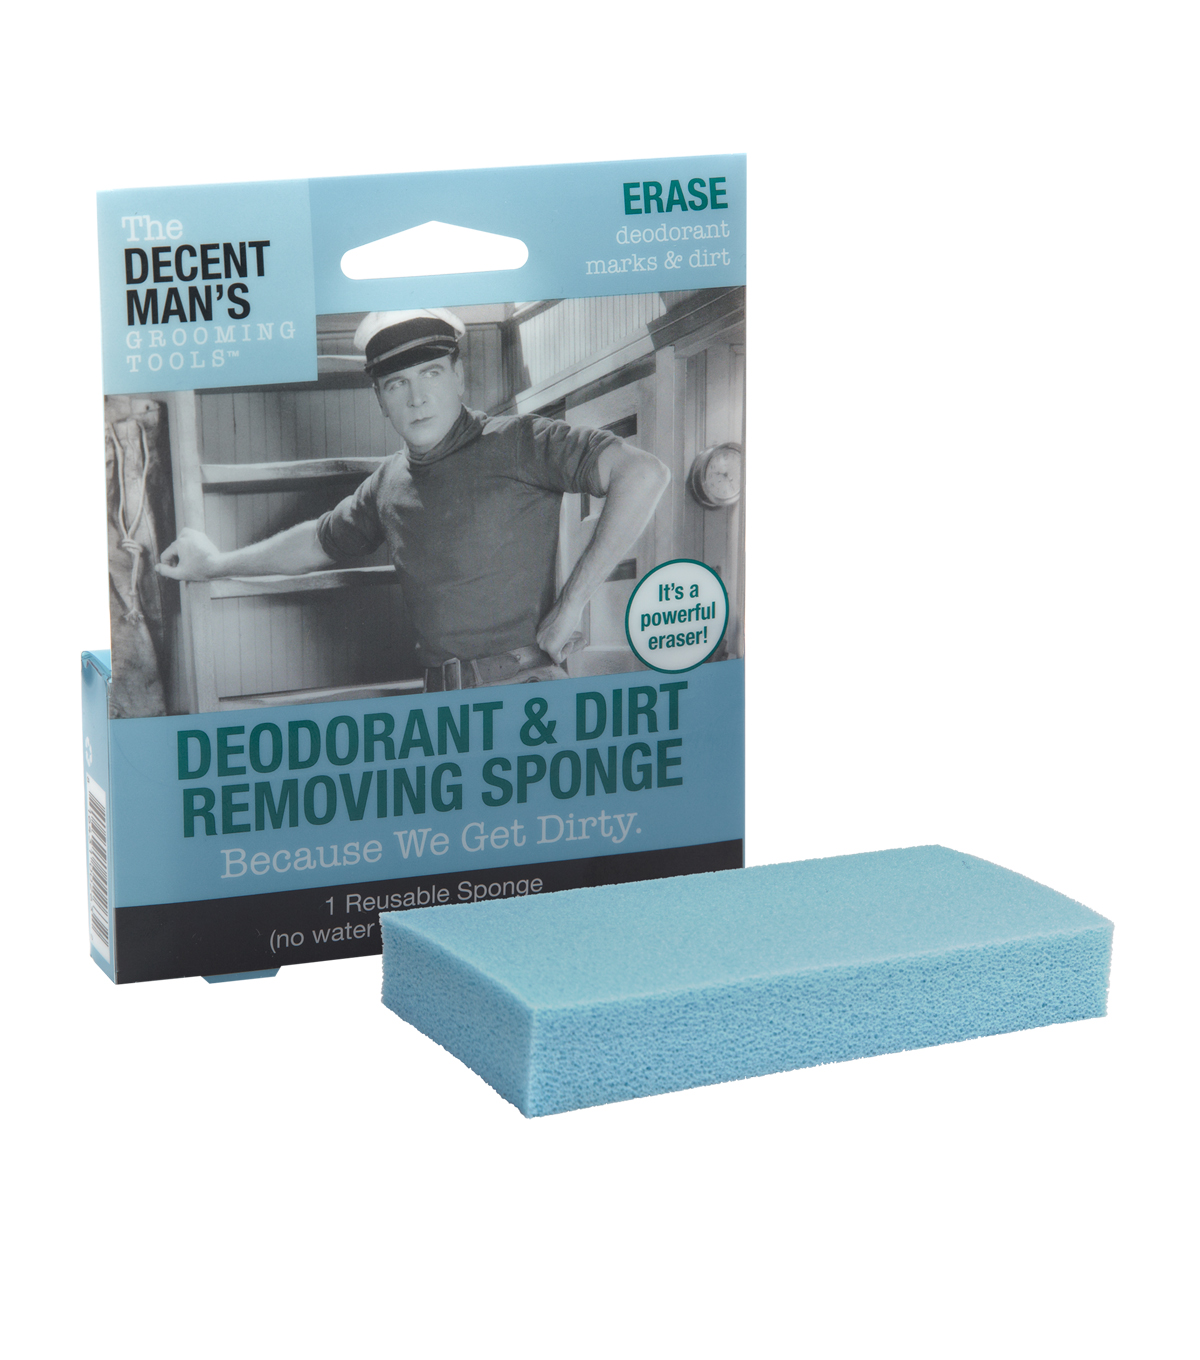 The Decent Man\u0027s Grooming Tools-Deodorant and Dirt Removing Sponge